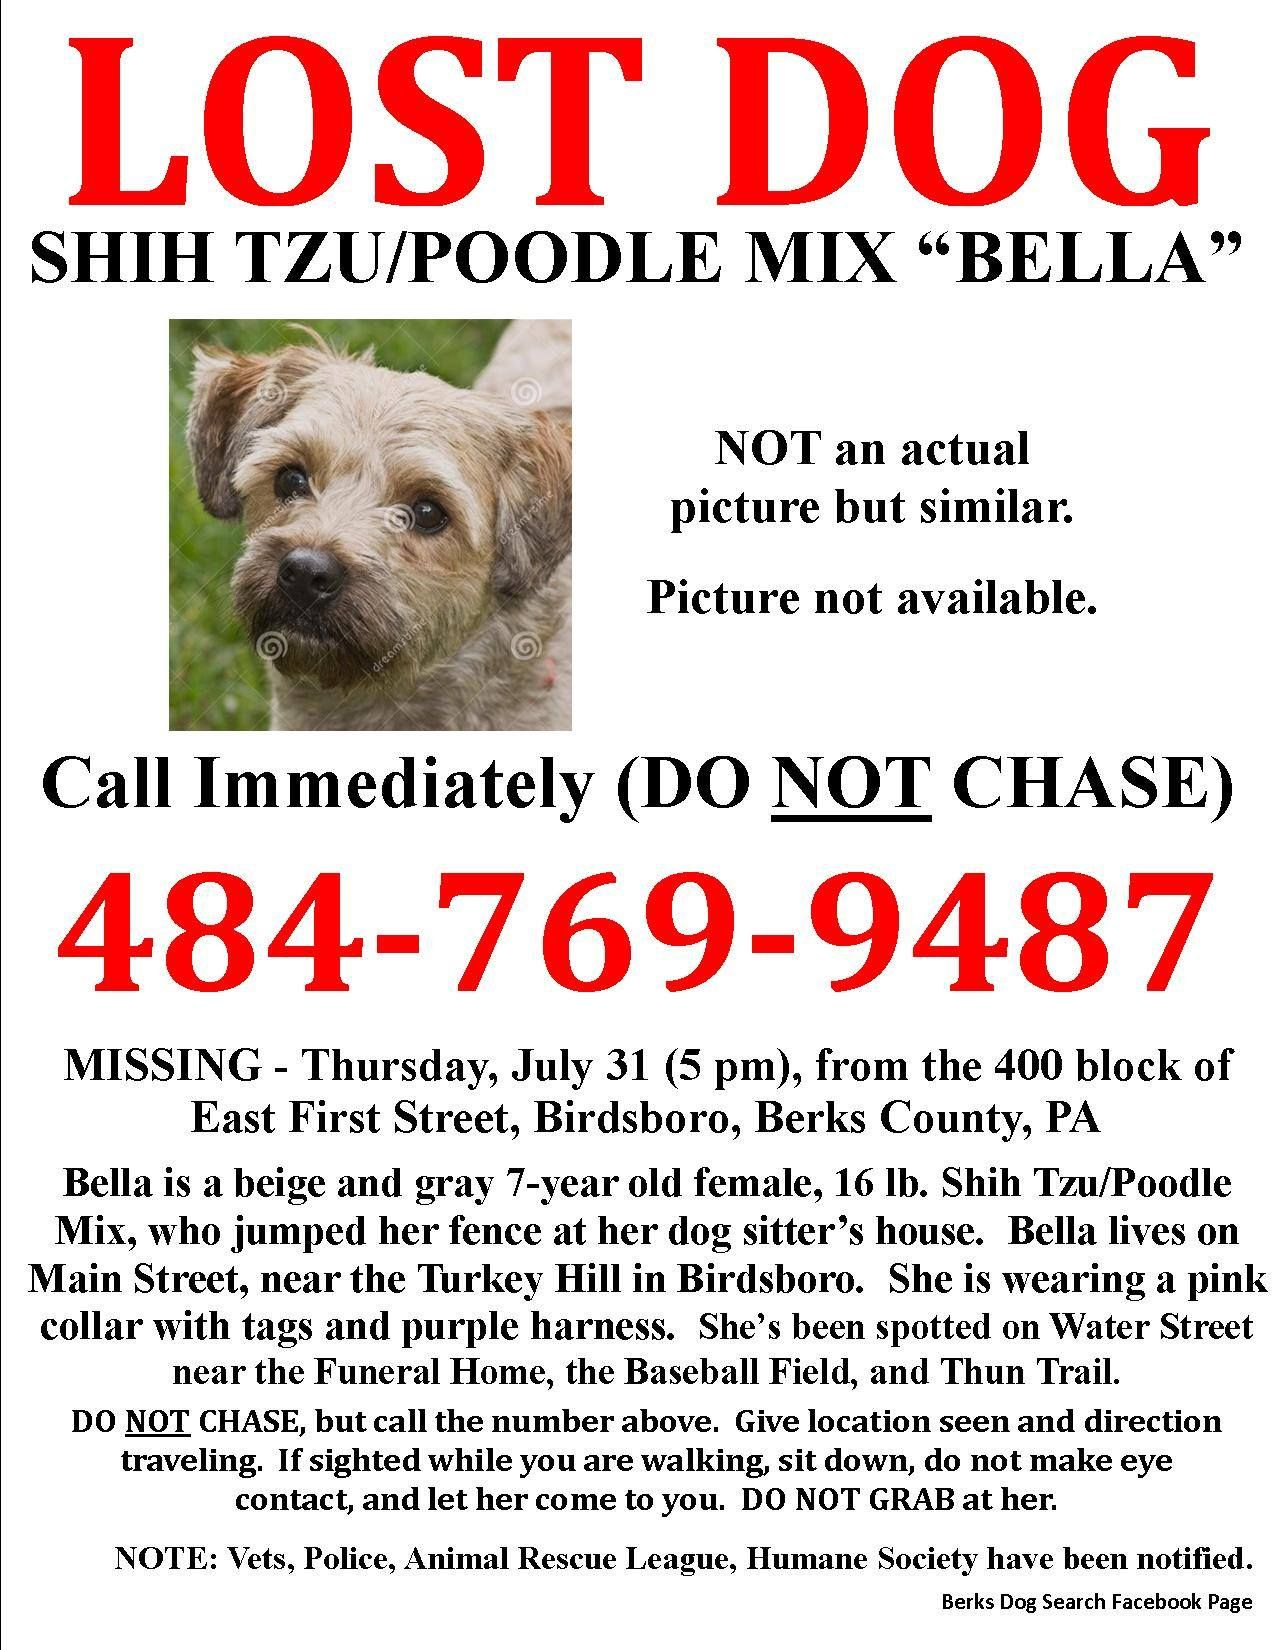 Bella is a Shih Tzu/Poodle Mix who jumped the fence at her